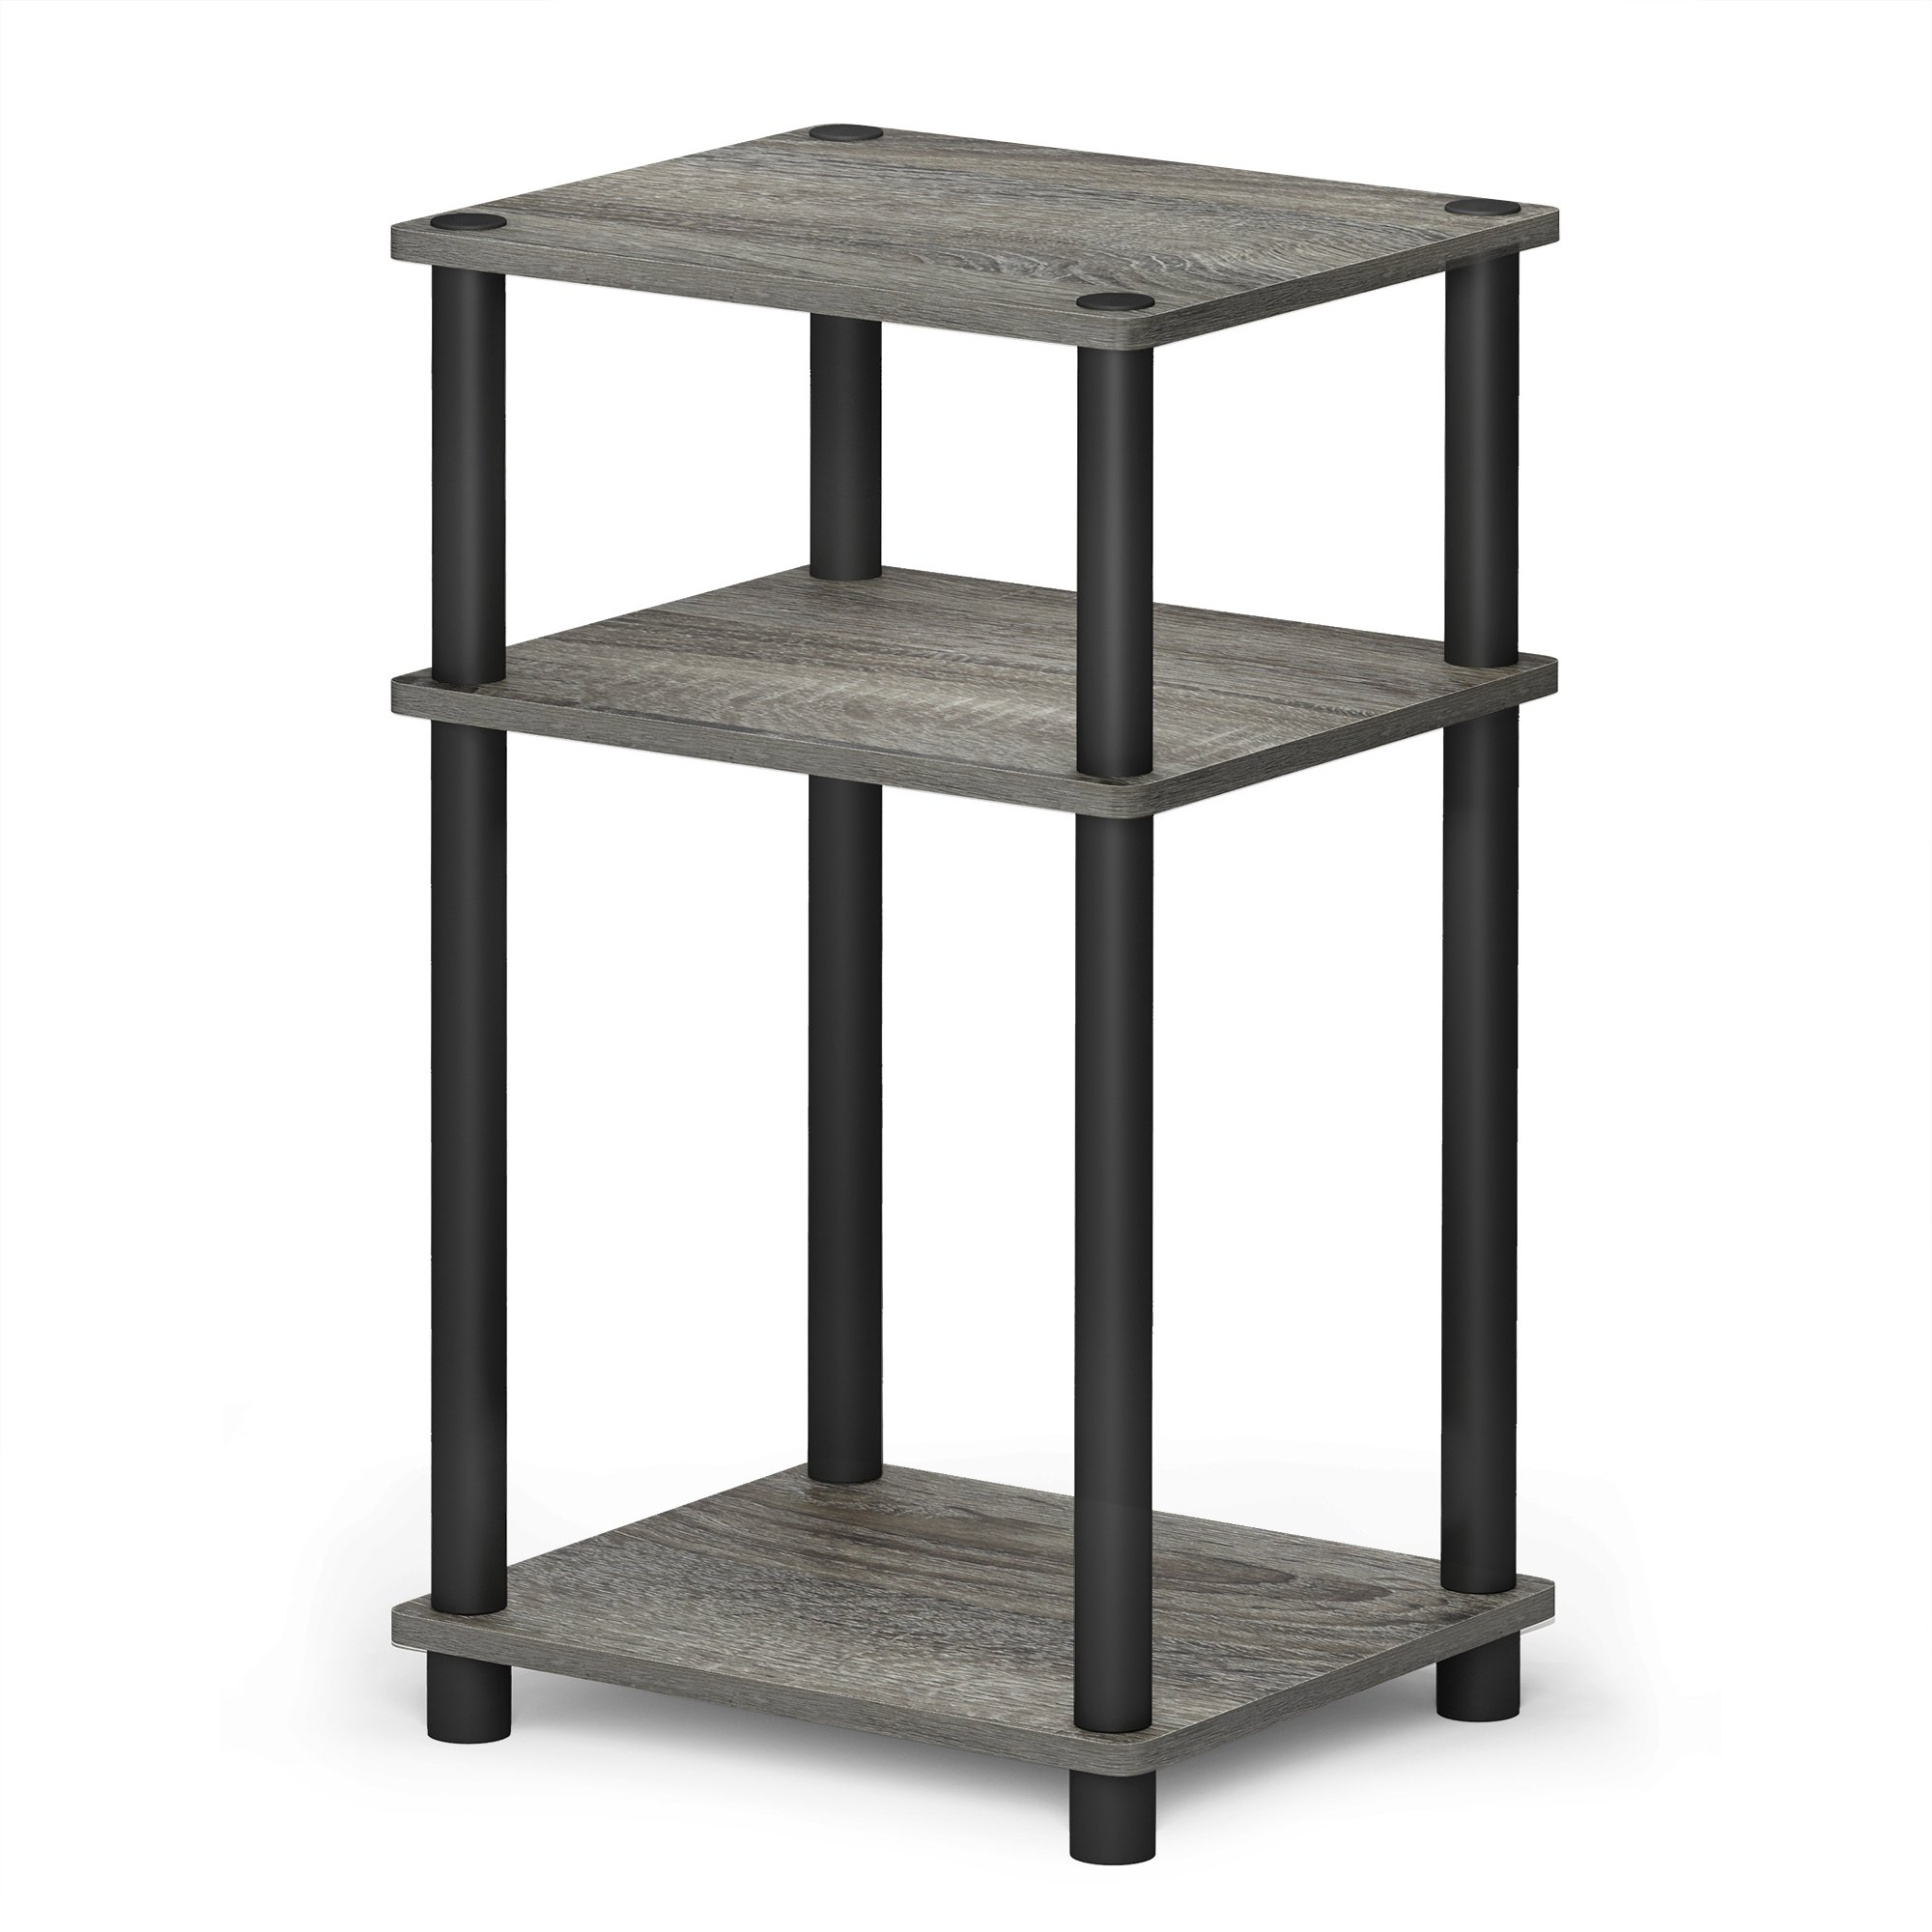 FURINNO 11087GYW/BK JUST Turn-N-Tube 3-Tier End Table, 1-Pack, French Oak Grey/Black by Furinno